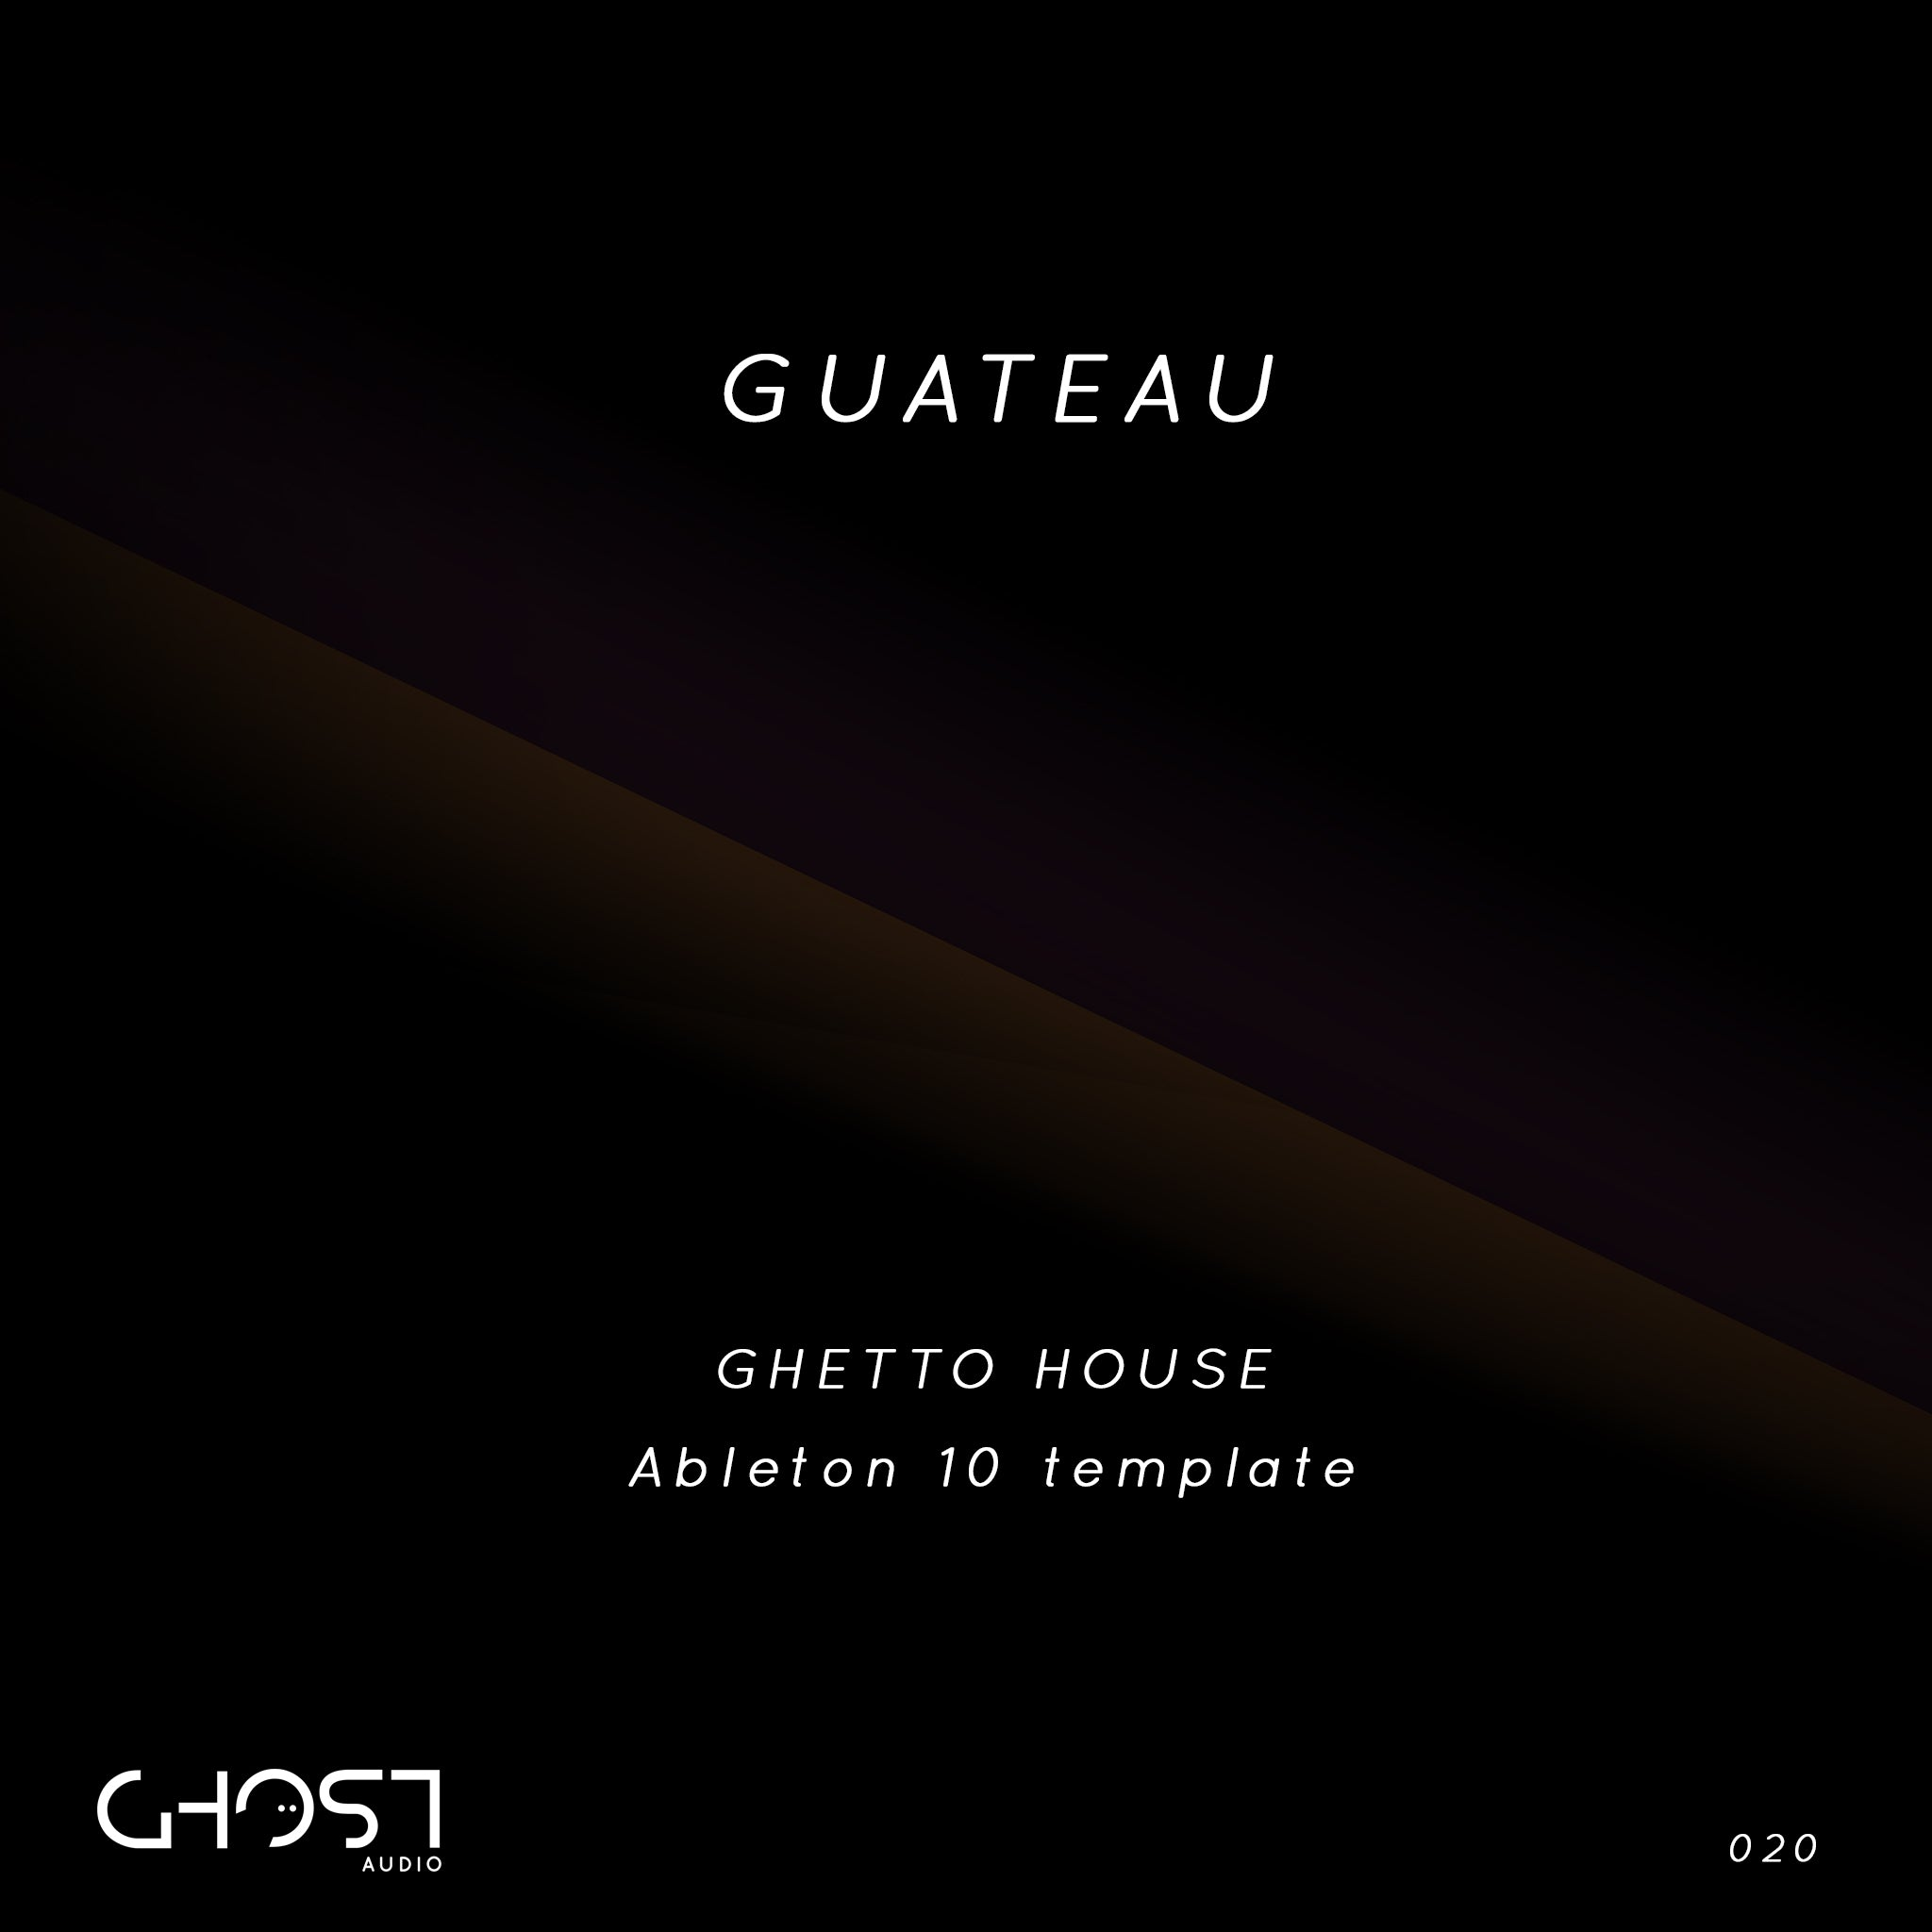 GUATEAU ( GHETTO HOUSE - ABLETON 10 TEMPLATE )